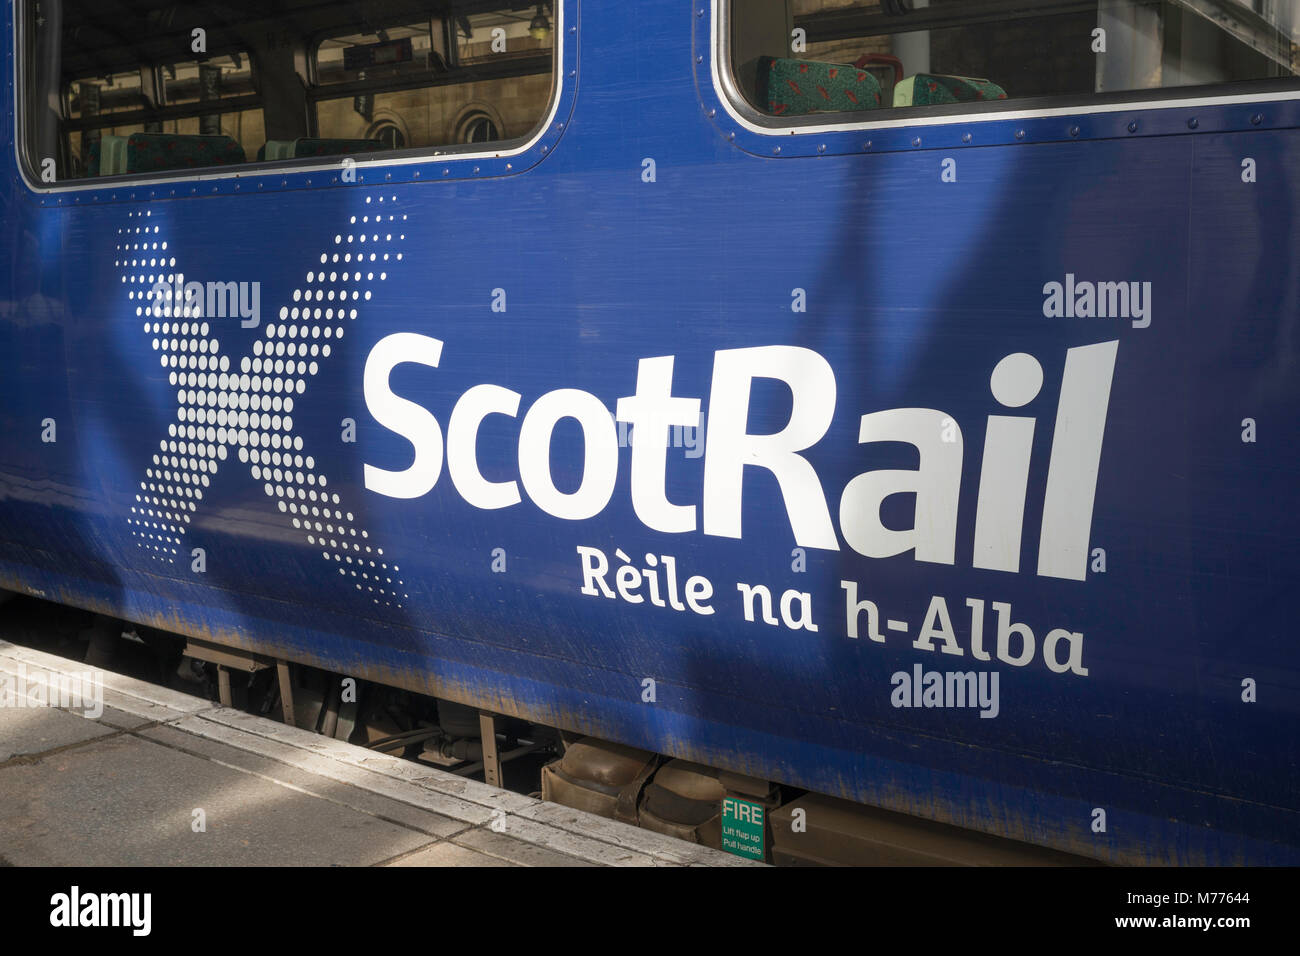 ScotRail logo on the side of a carriage with Gaelic Rèile na h-Alba (Scotland's Railway) - Stock Image